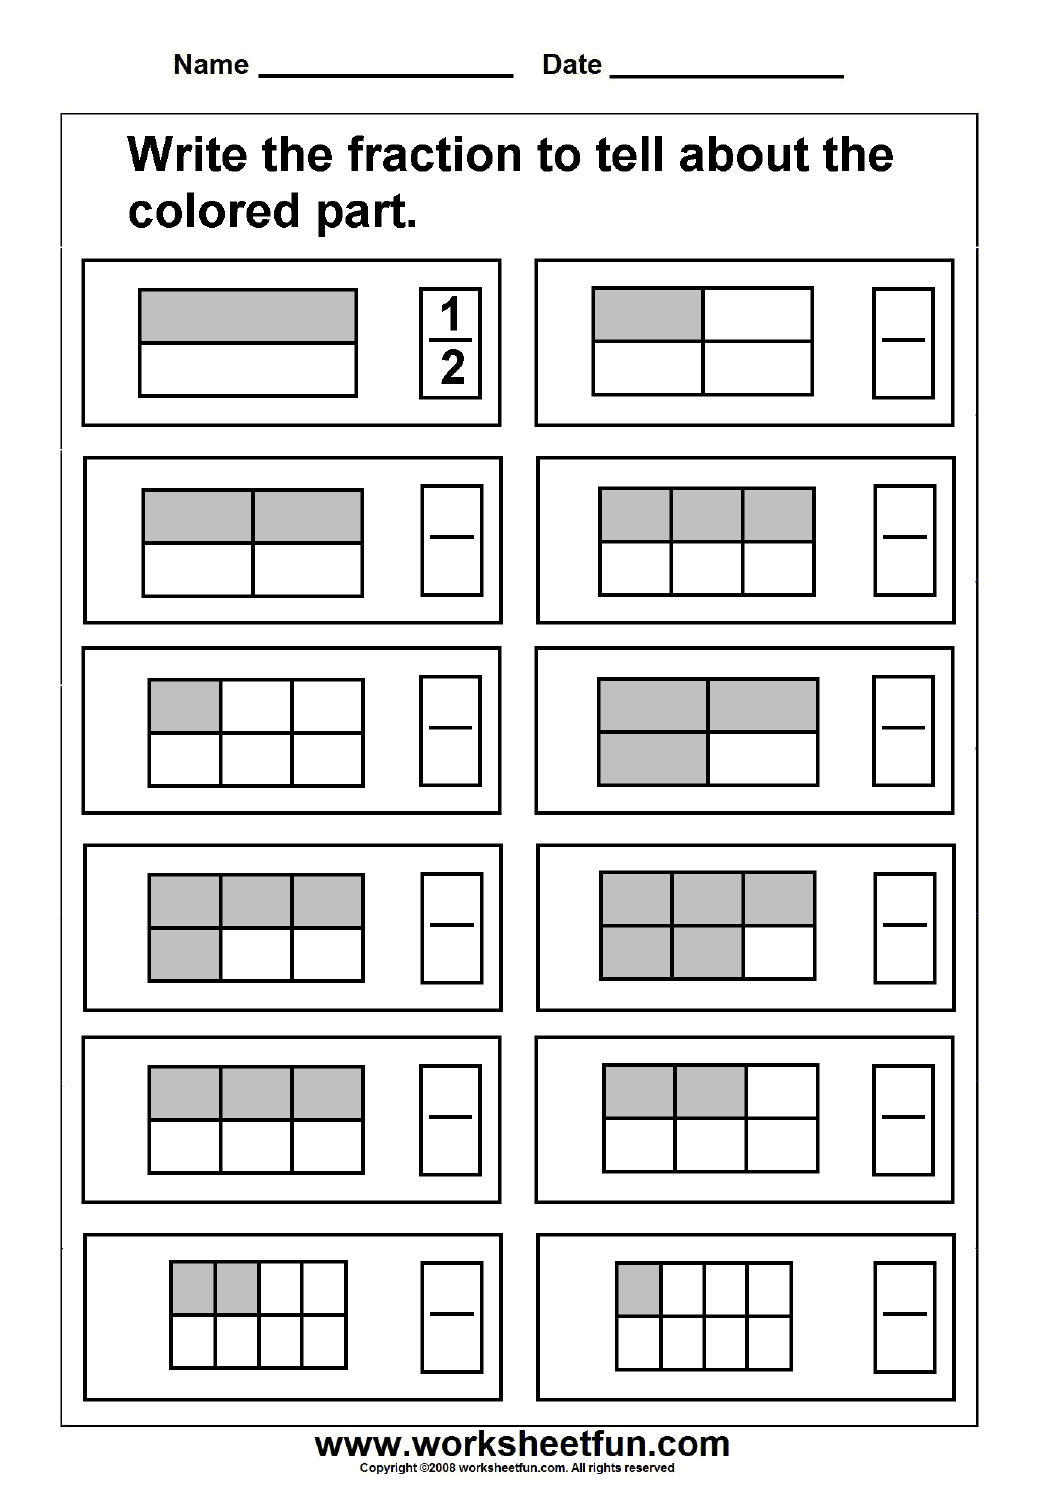 Fraction FREE Printable Worksheets Worksheetfun – Fractions of a Whole Worksheet